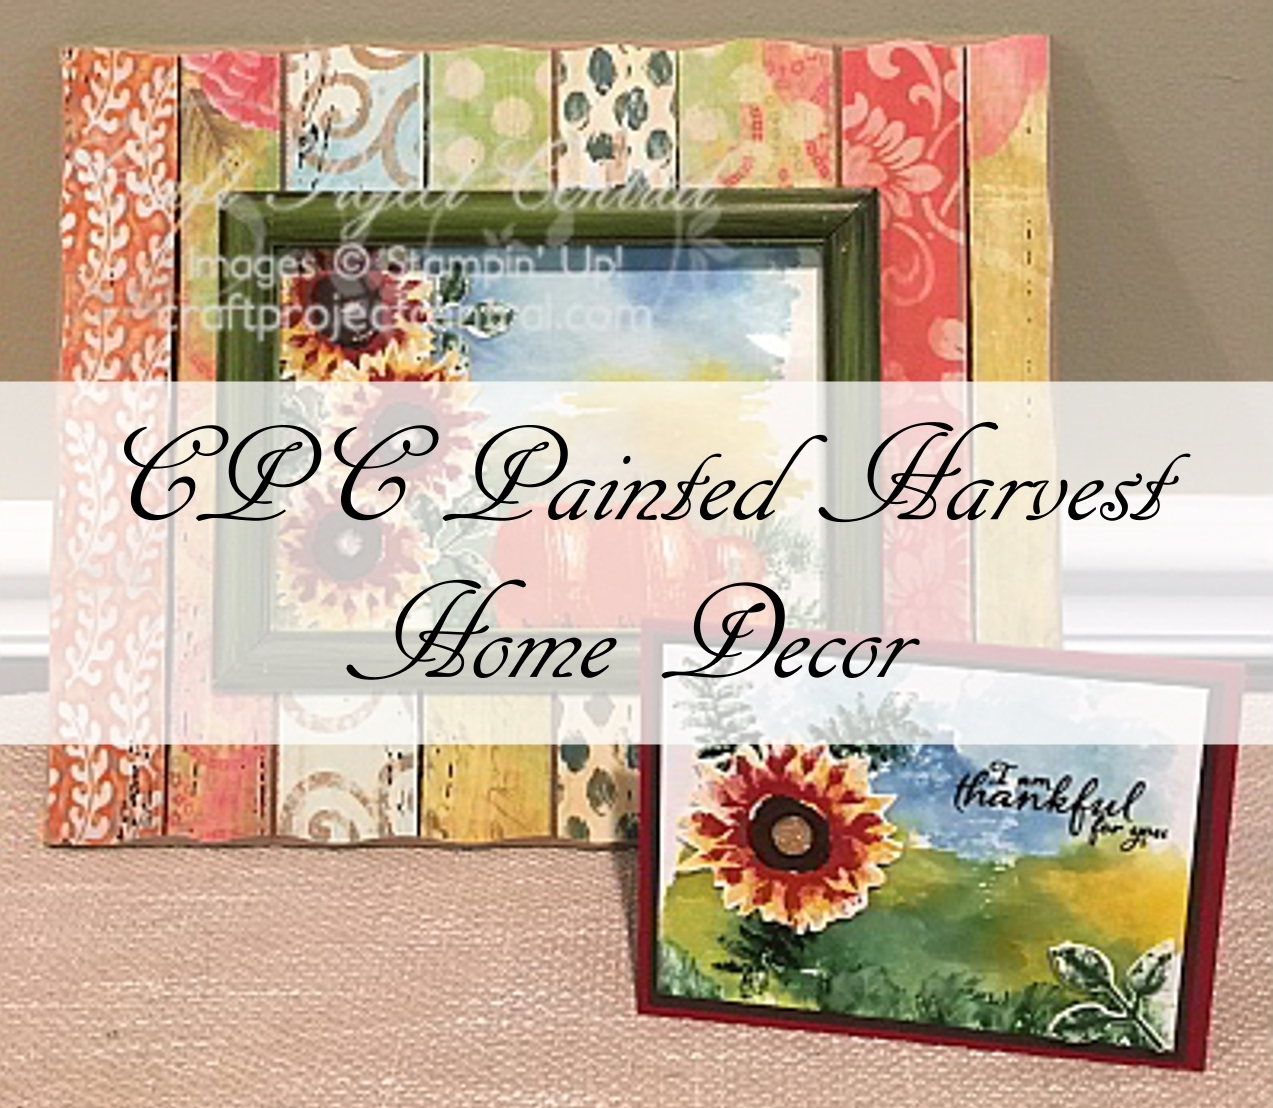 create with christy cpc painted harvest home decor cpc painted harvest home decor